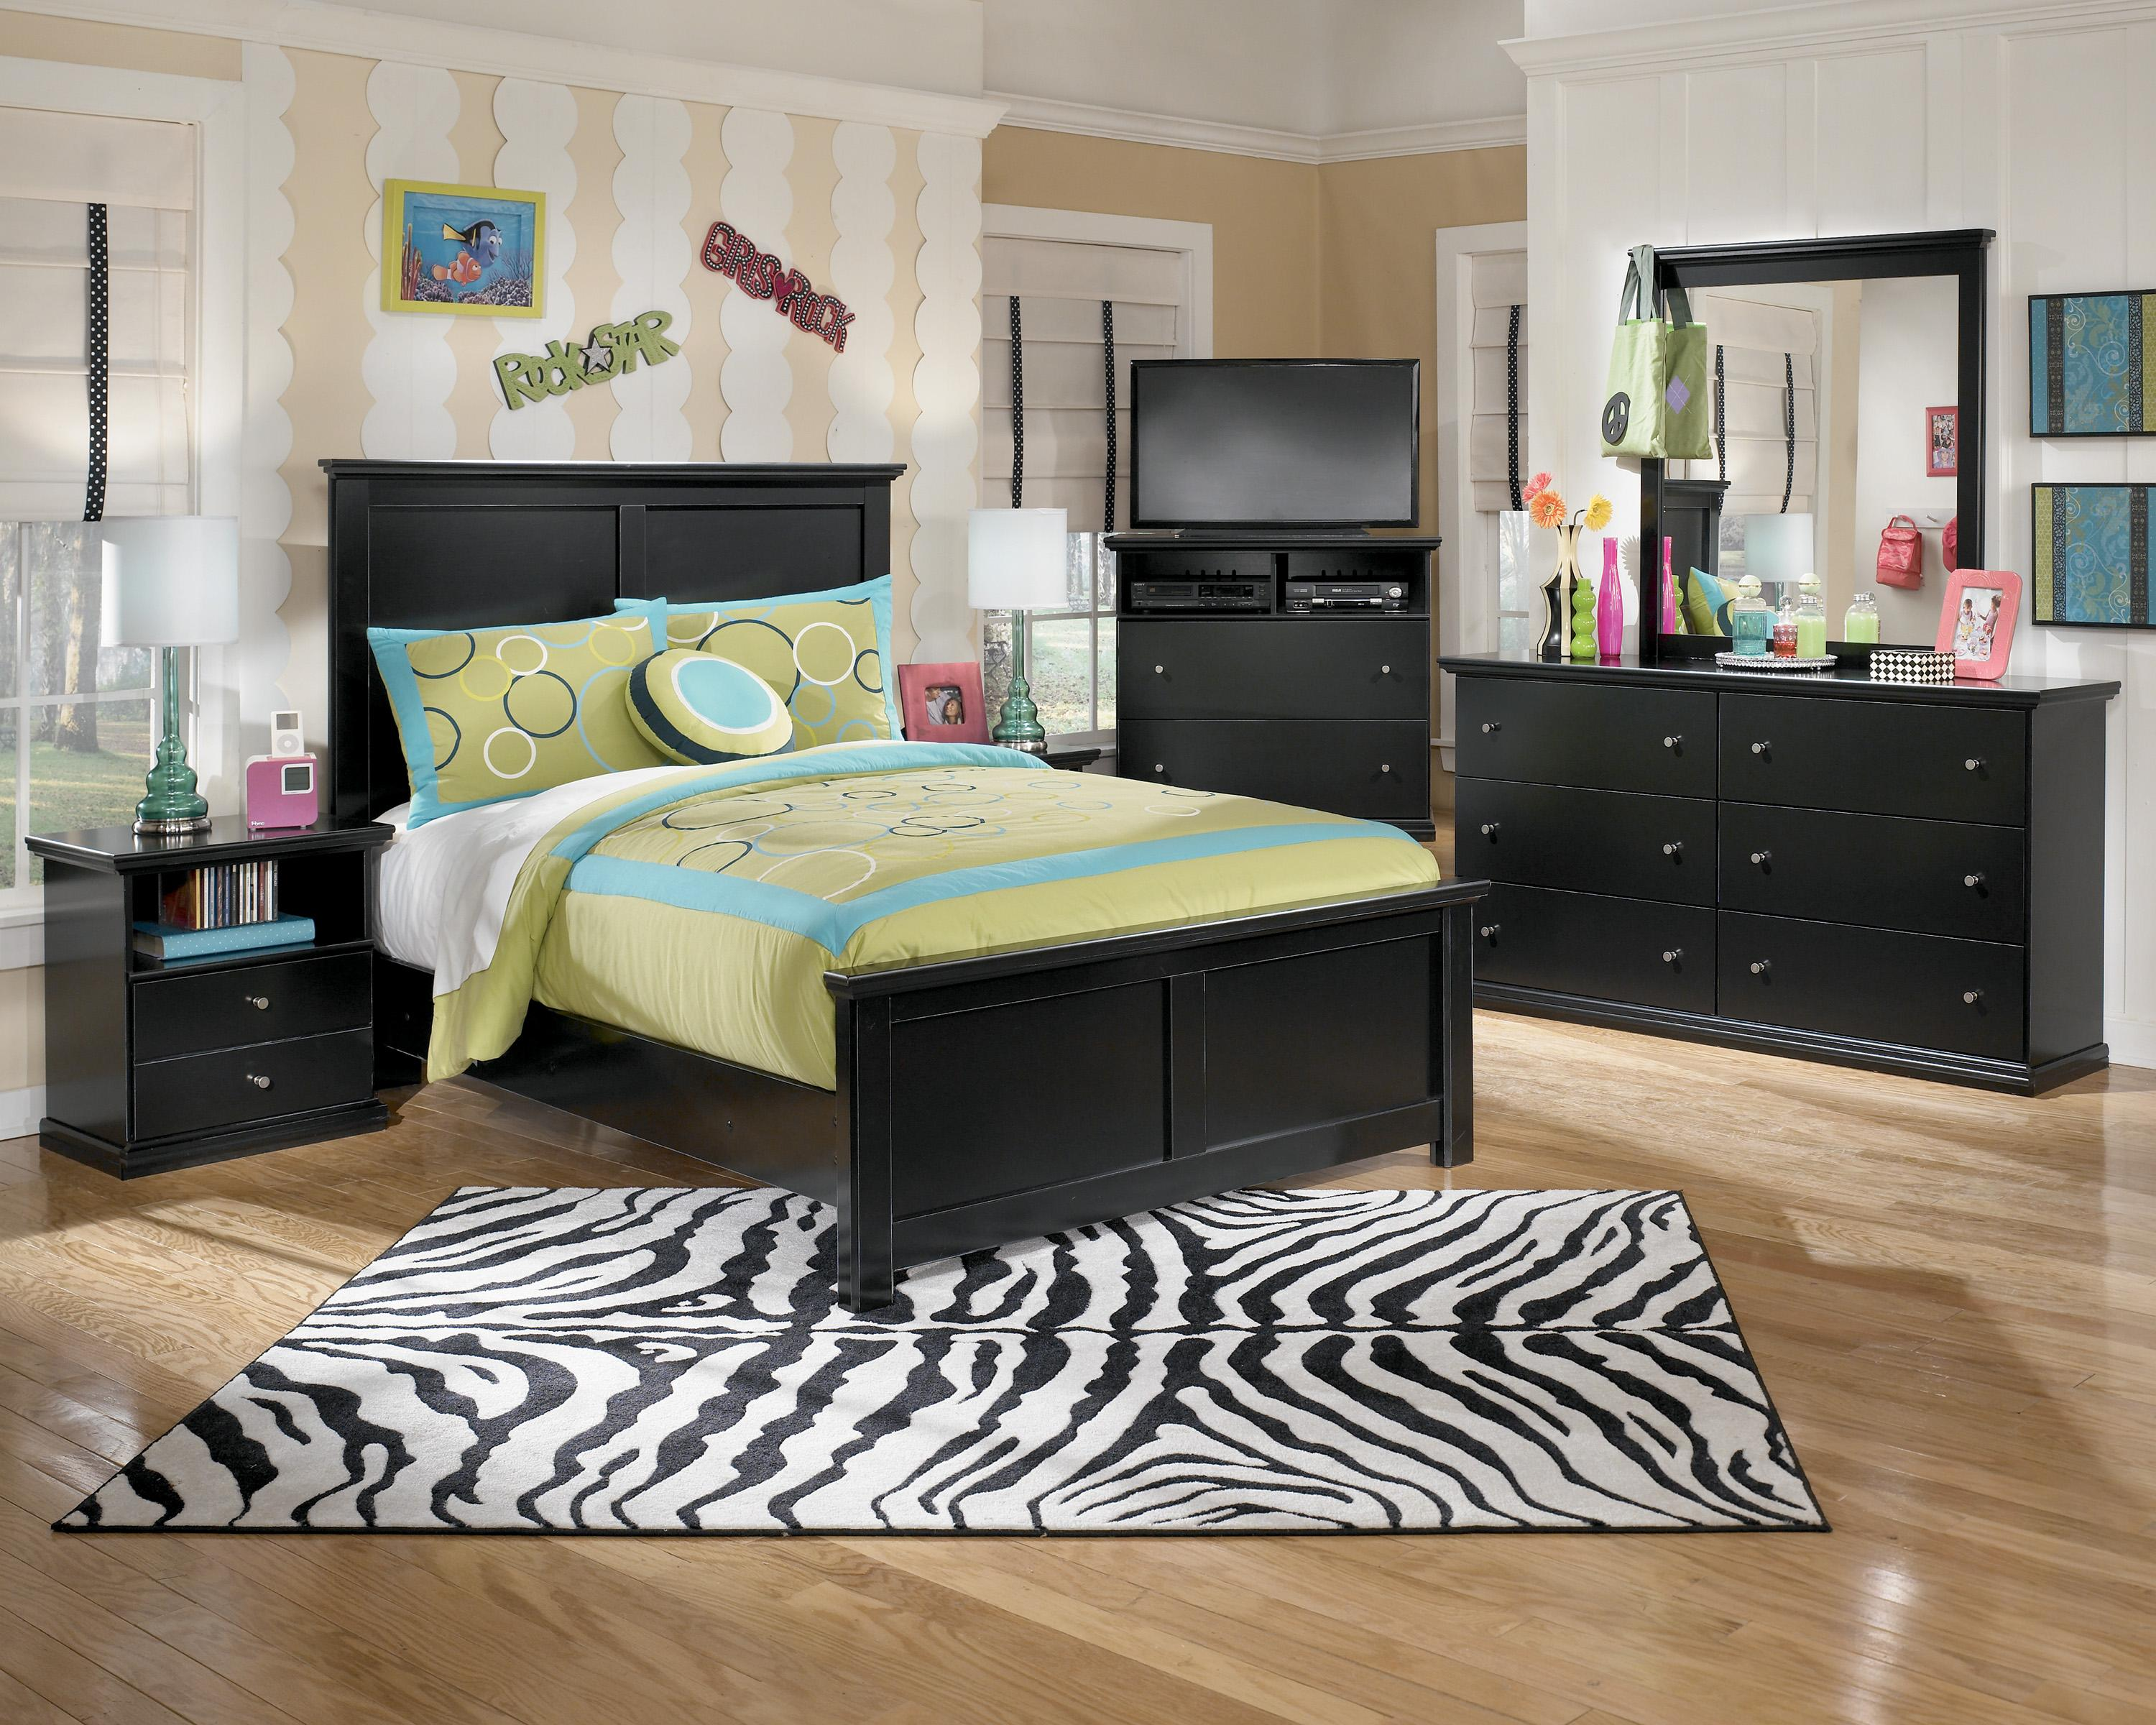 Signature Design by Ashley Maribel Queen Bedroom Group - Item Number: B138 Q Bedroom Group 5